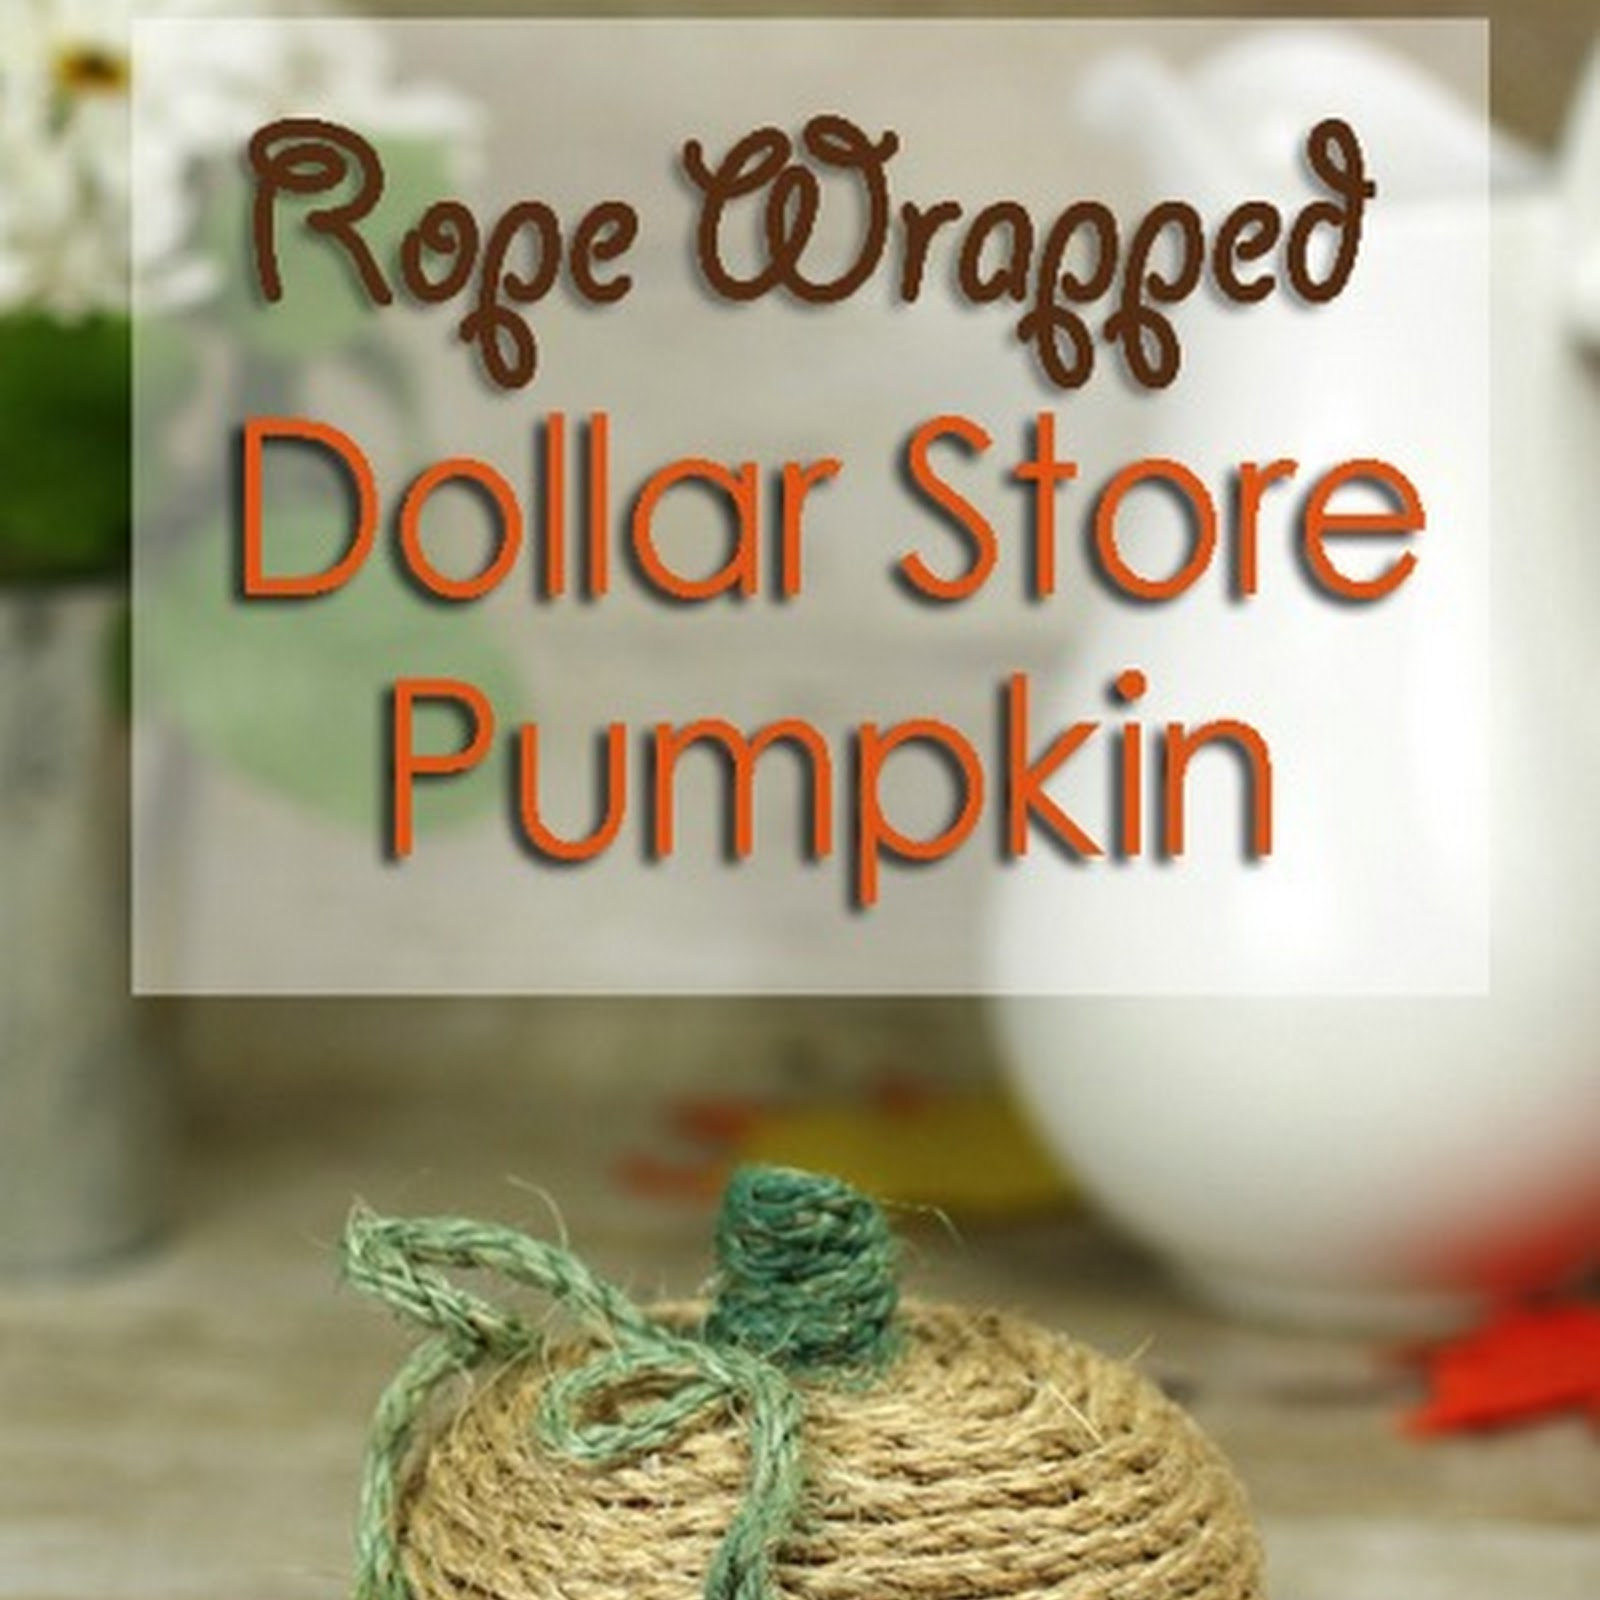 Rope Wrapped Dollar Store Pumpkin